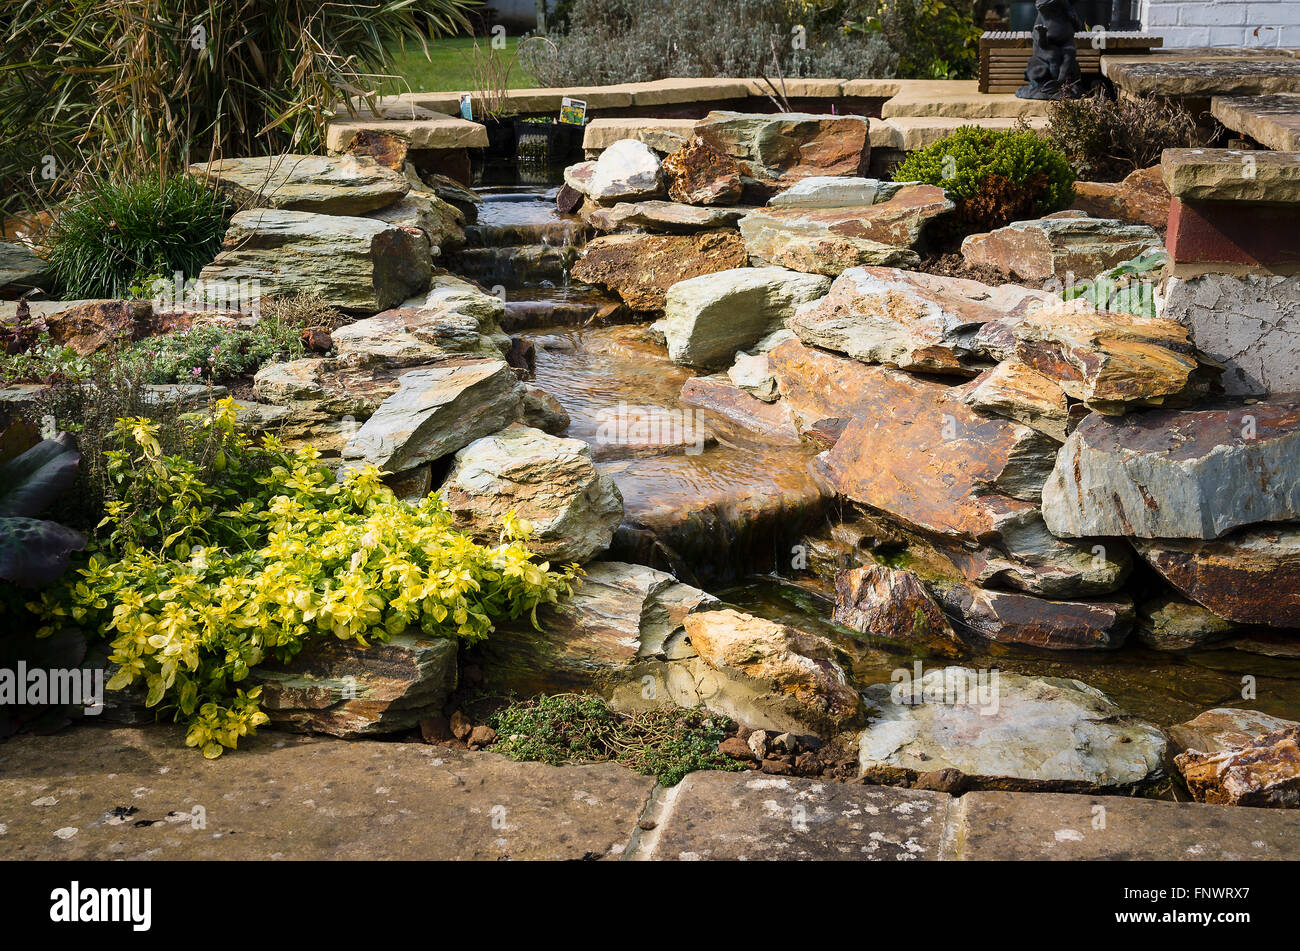 A New Small Garden Water Feature Using Welsh Slate Rocks   Stock Image